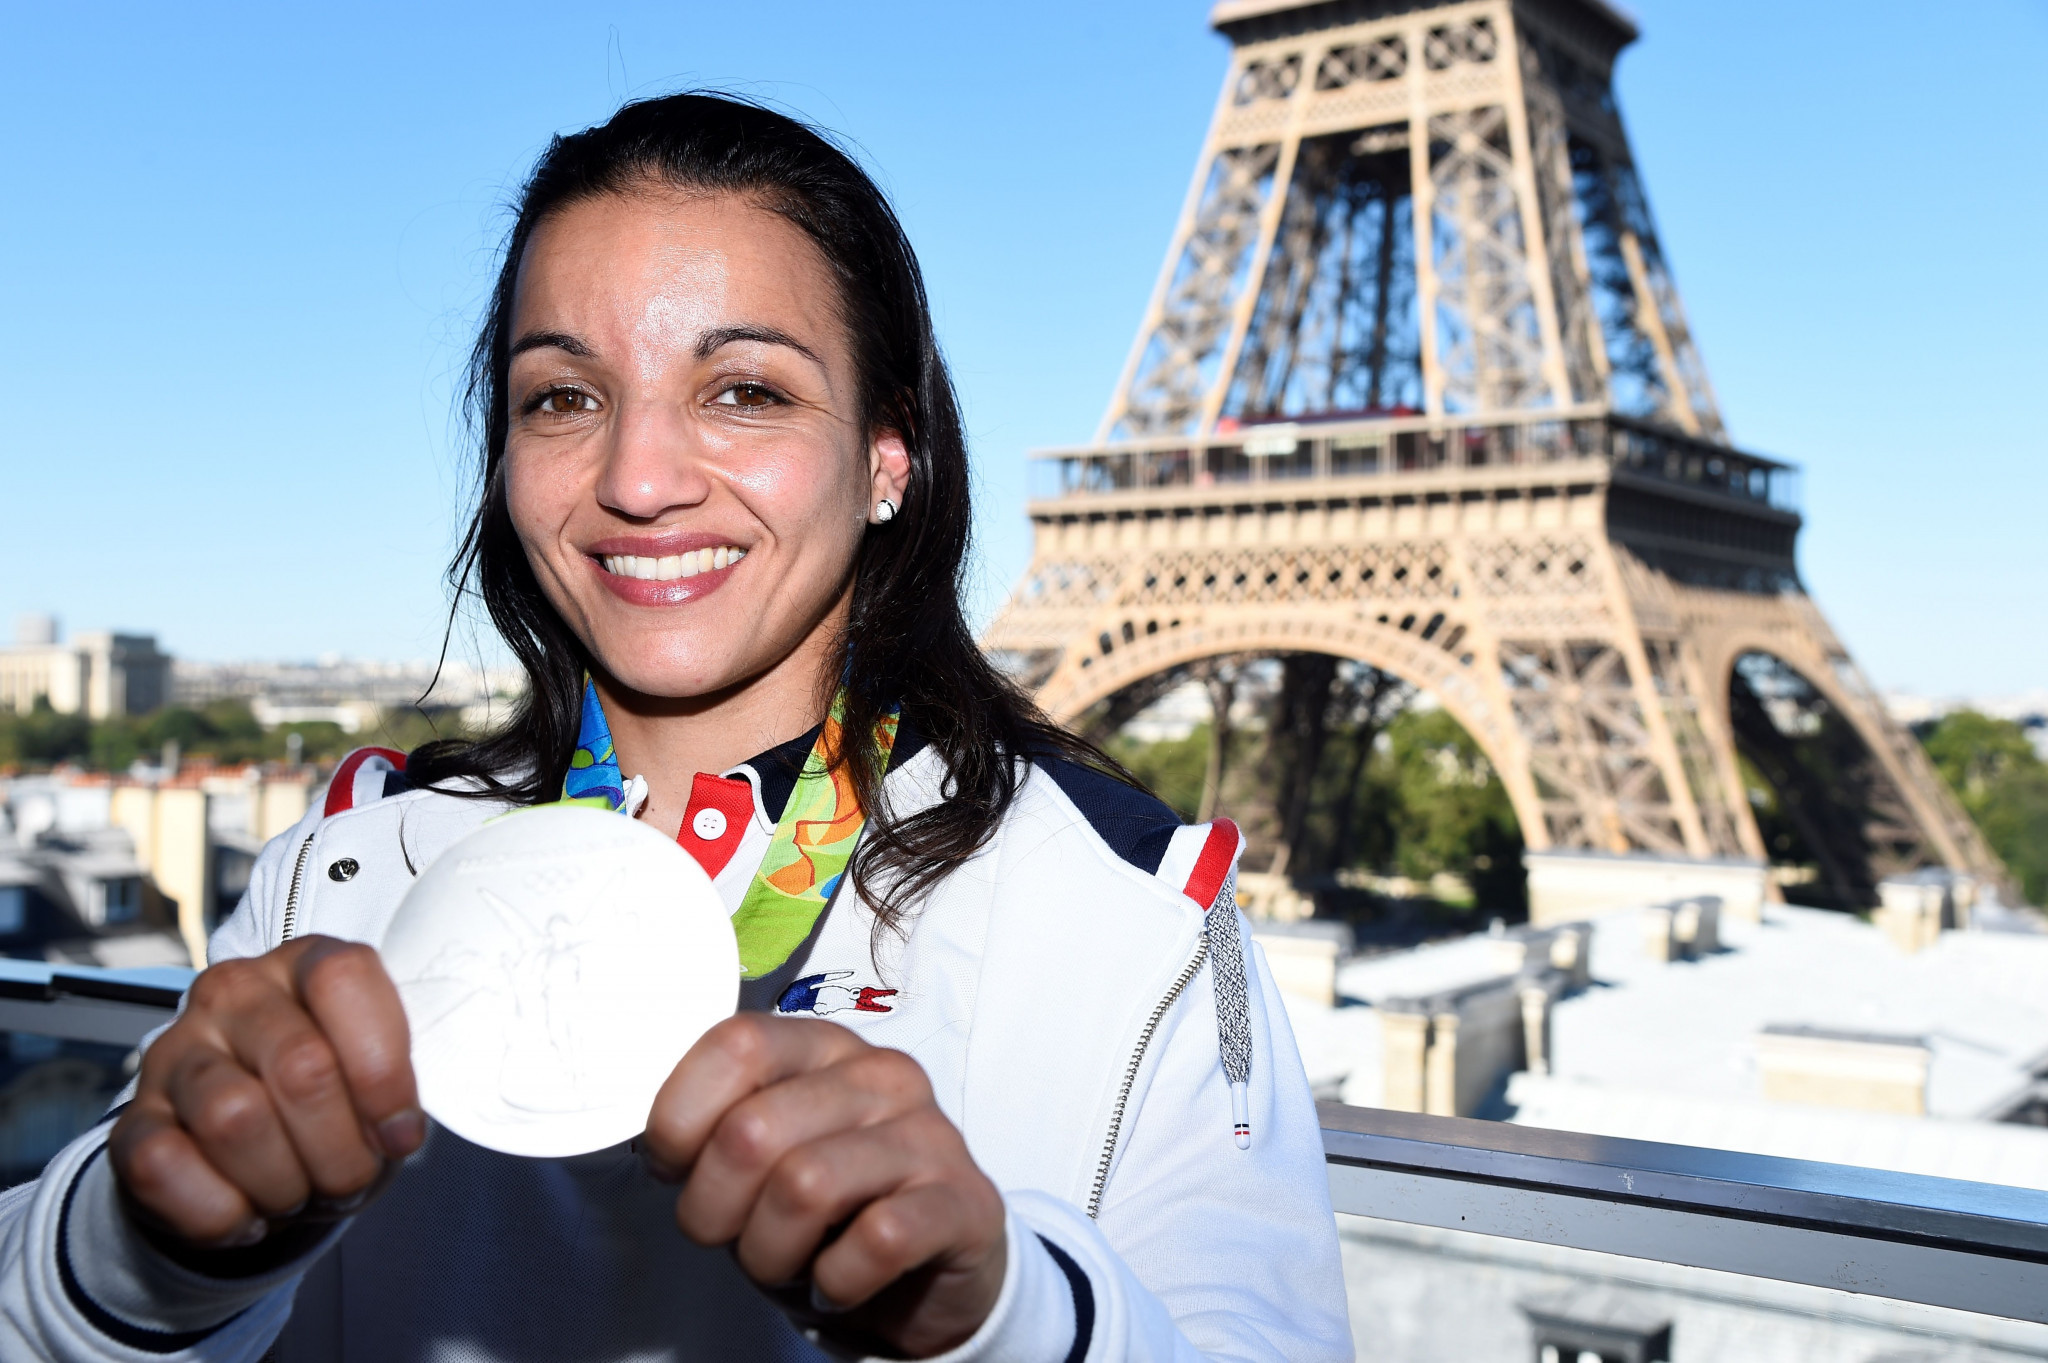 Paris 2024 hosts discussions with athletes in isolation